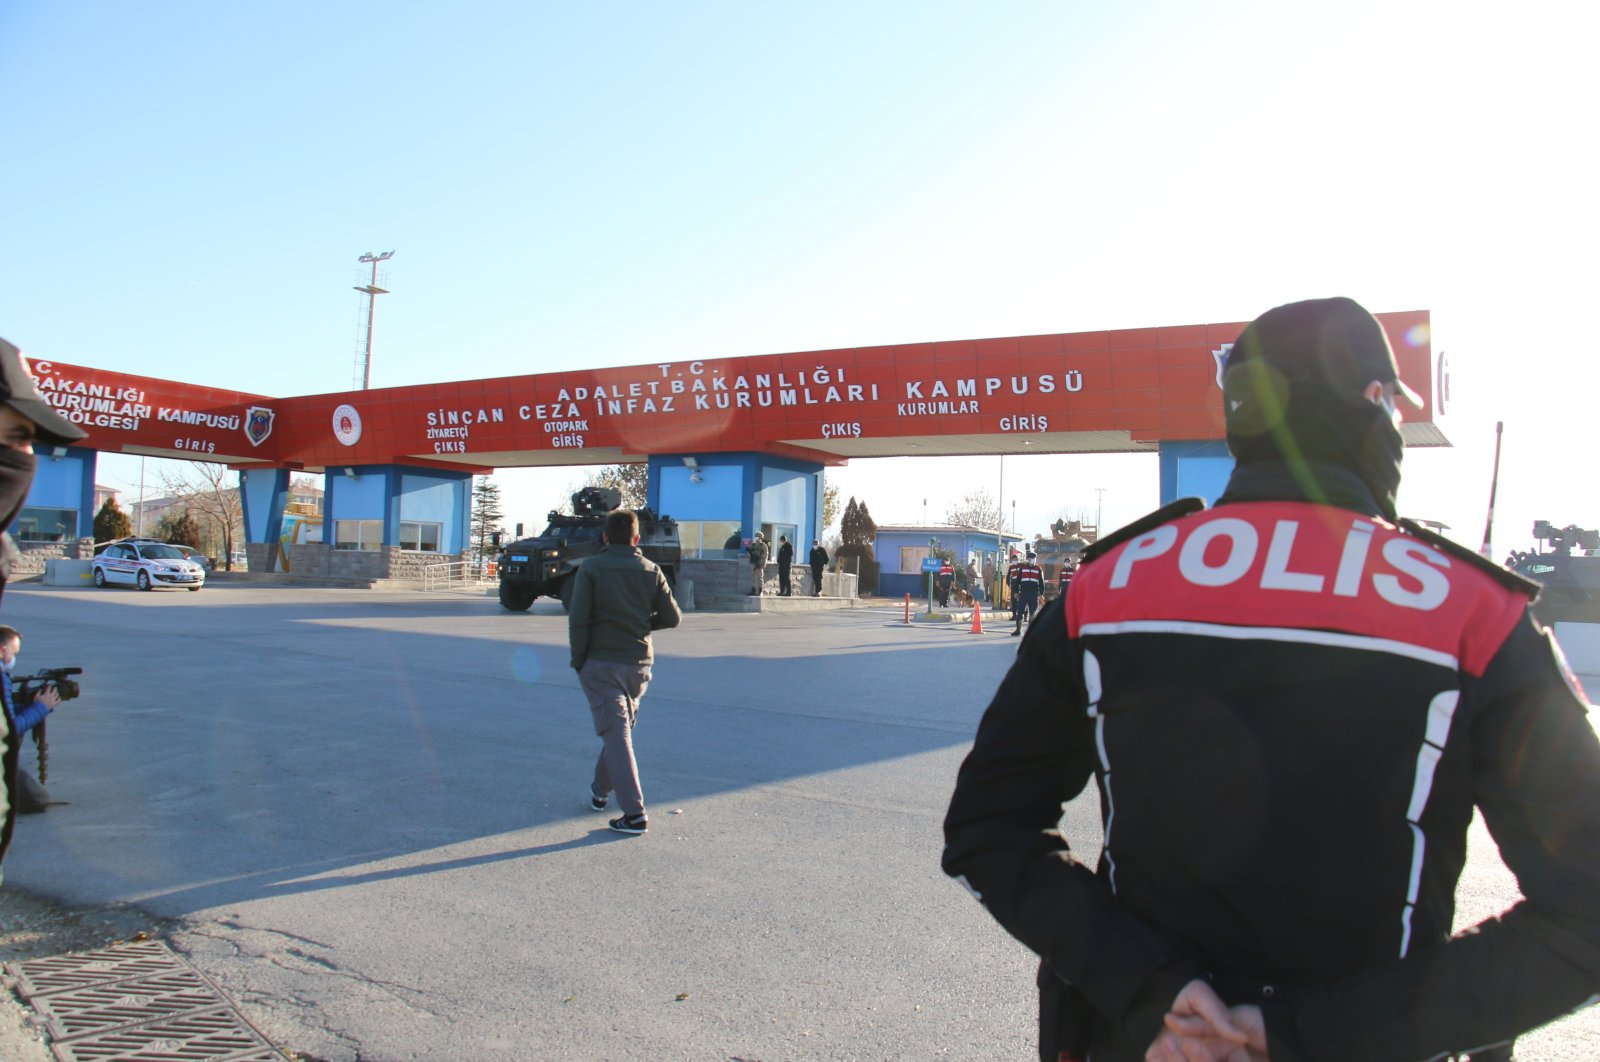 A police officer stands guard at the entrance of the courthouse-prison complex where the trial was held, in the capital Ankara, Turkey, Nov. 26, 2020. (IHA Photo)